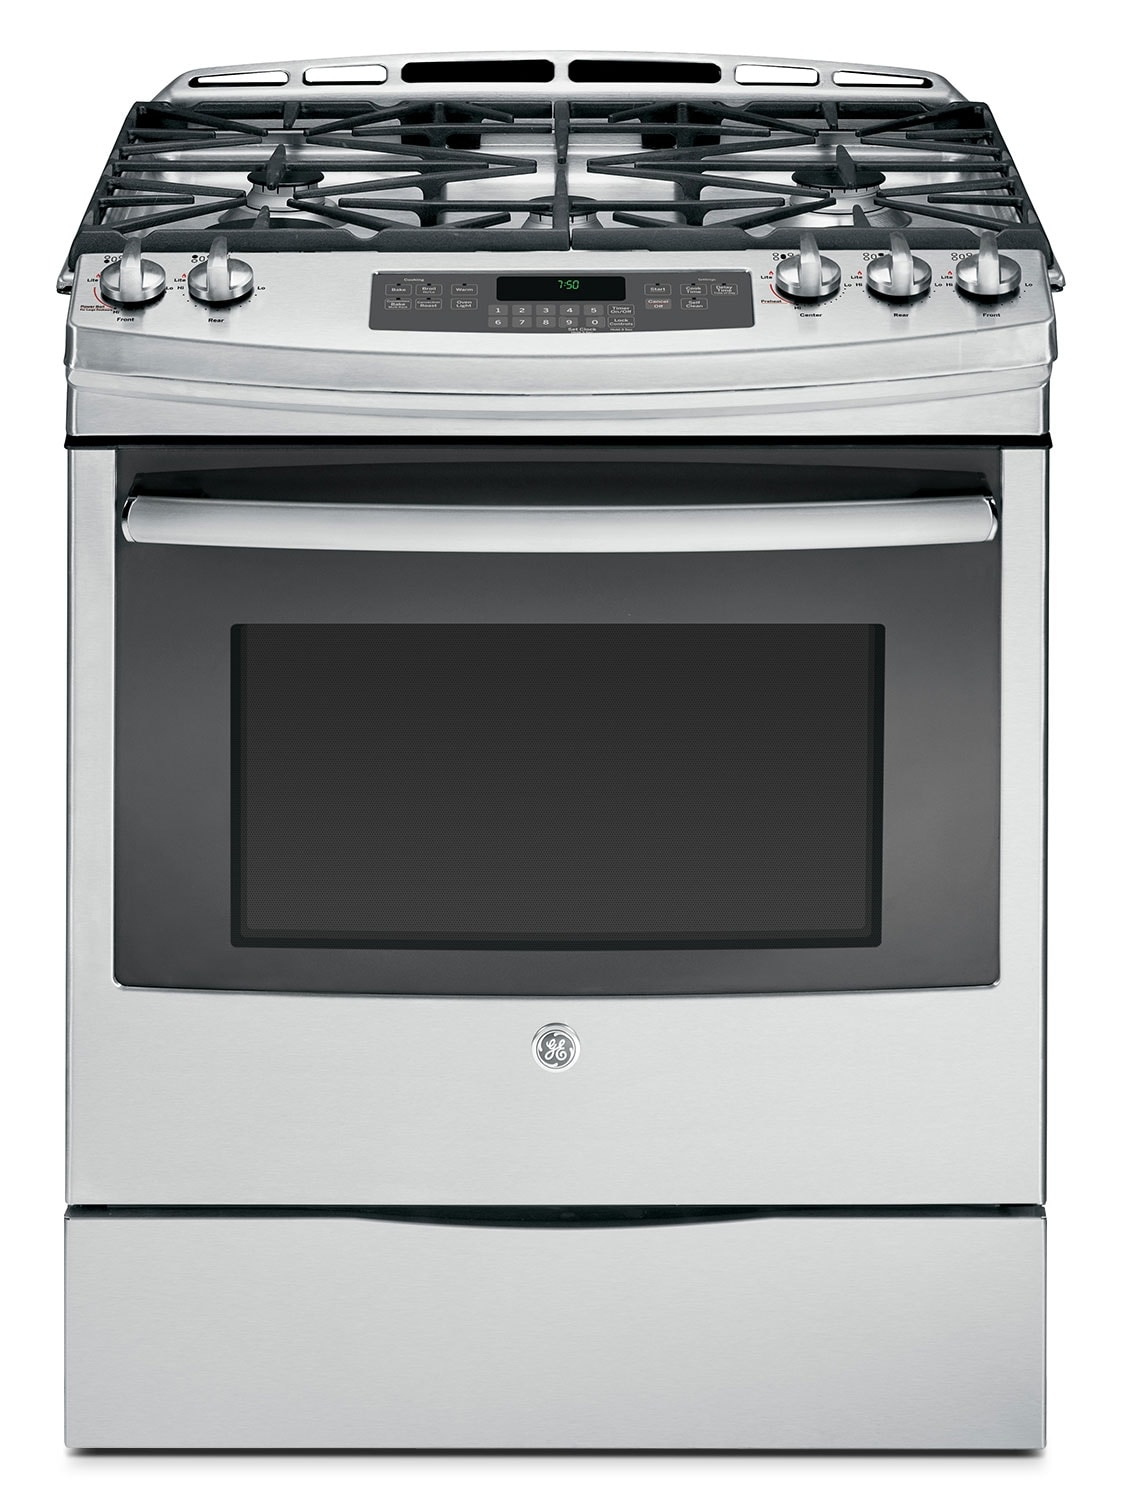 Cooking Products - GE Stainless Steel Slide-In Gas Convection Range (5.4 Cu. Ft.) - JCGS750SEFSS